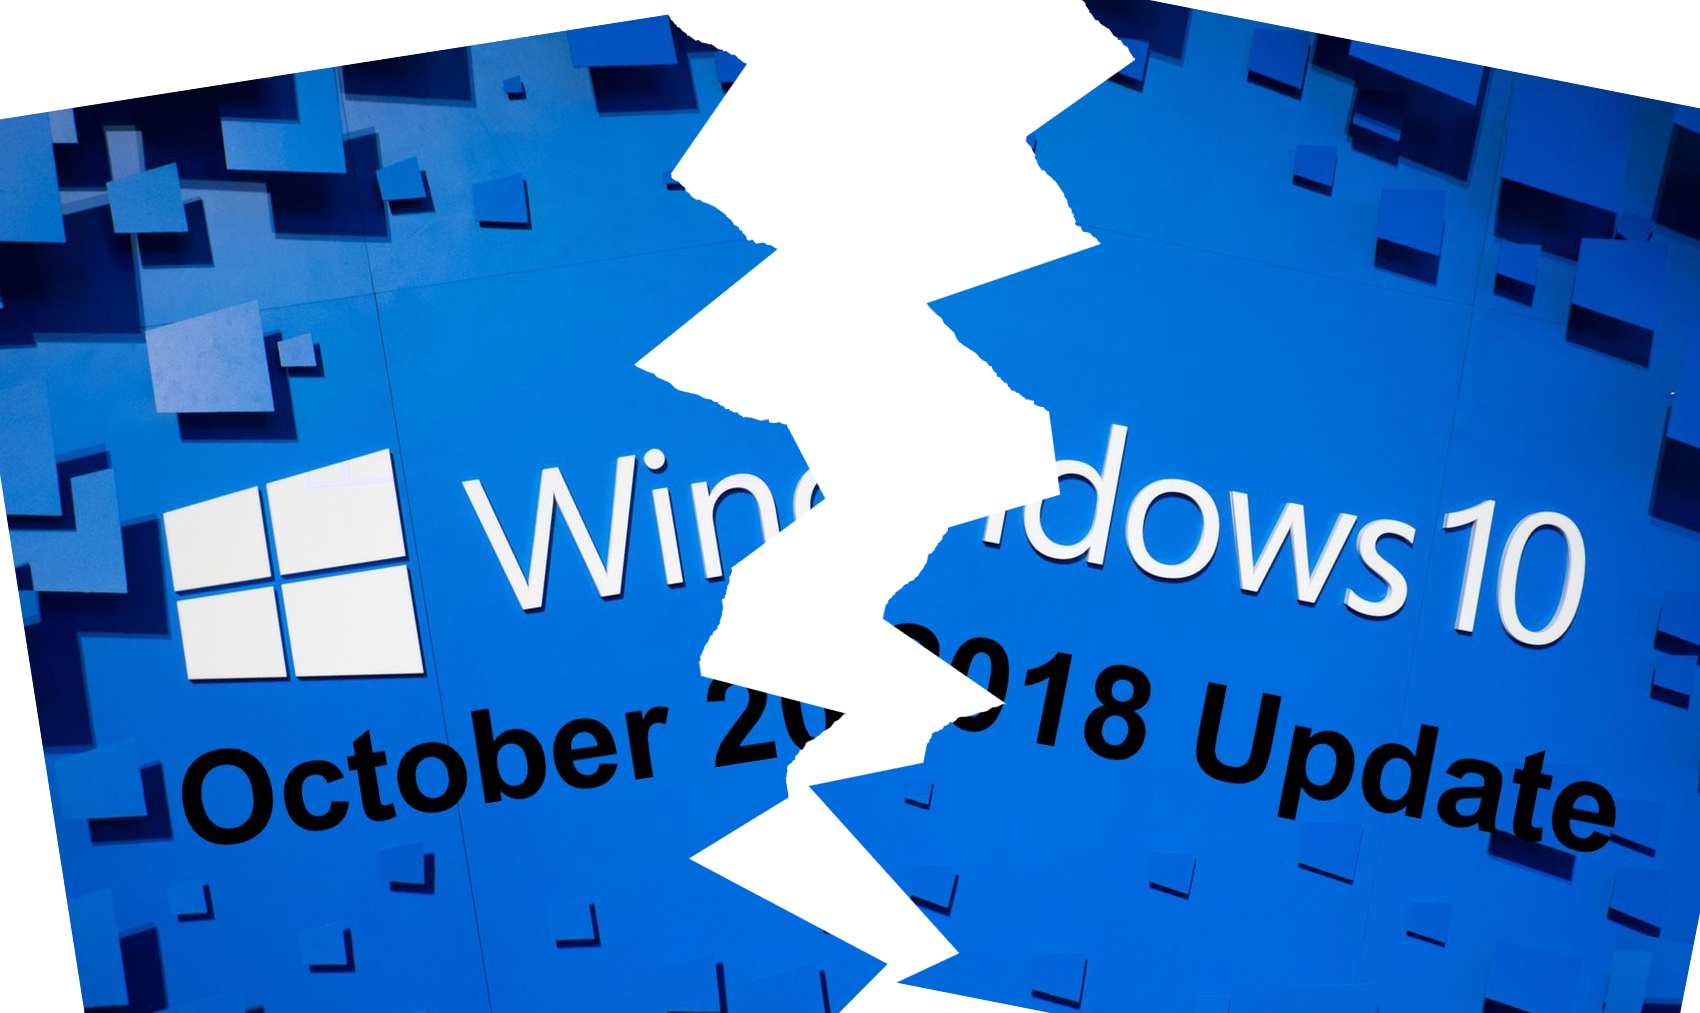 Windows 10 October 2018 Update runs into more trouble with Intel drivers